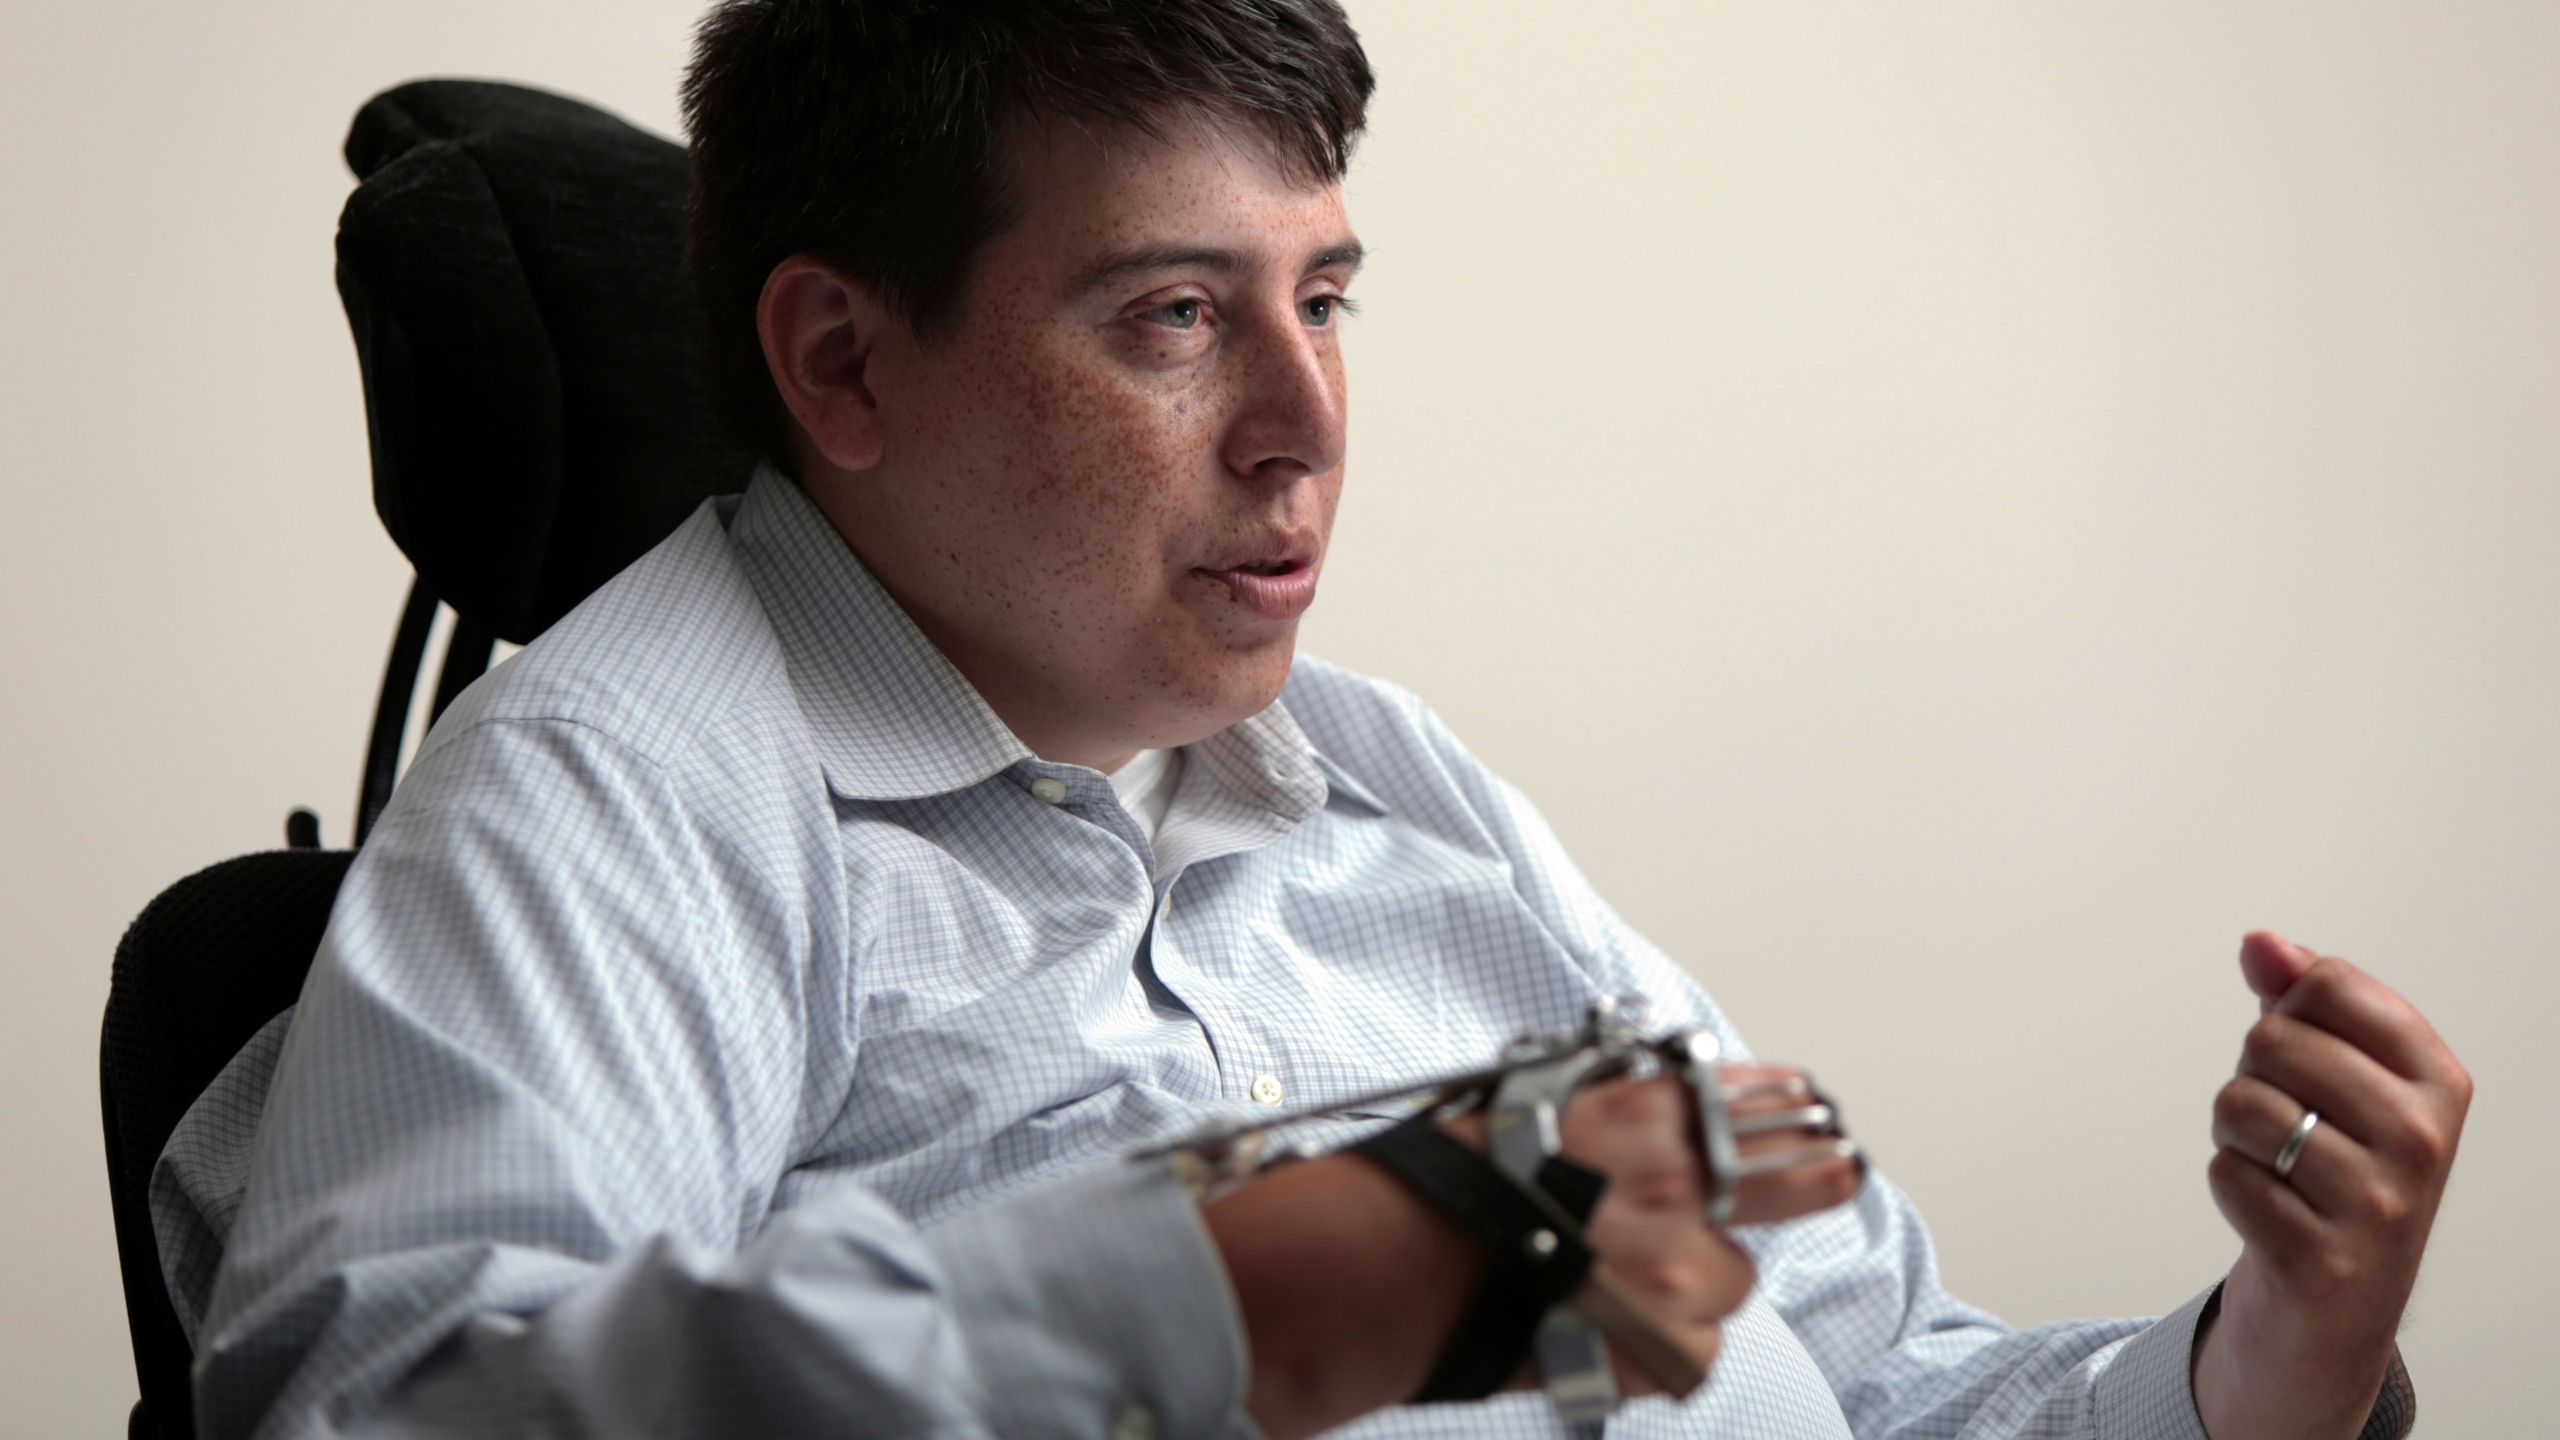 Disabled Wisconsin lawmaker asks to participate remotely